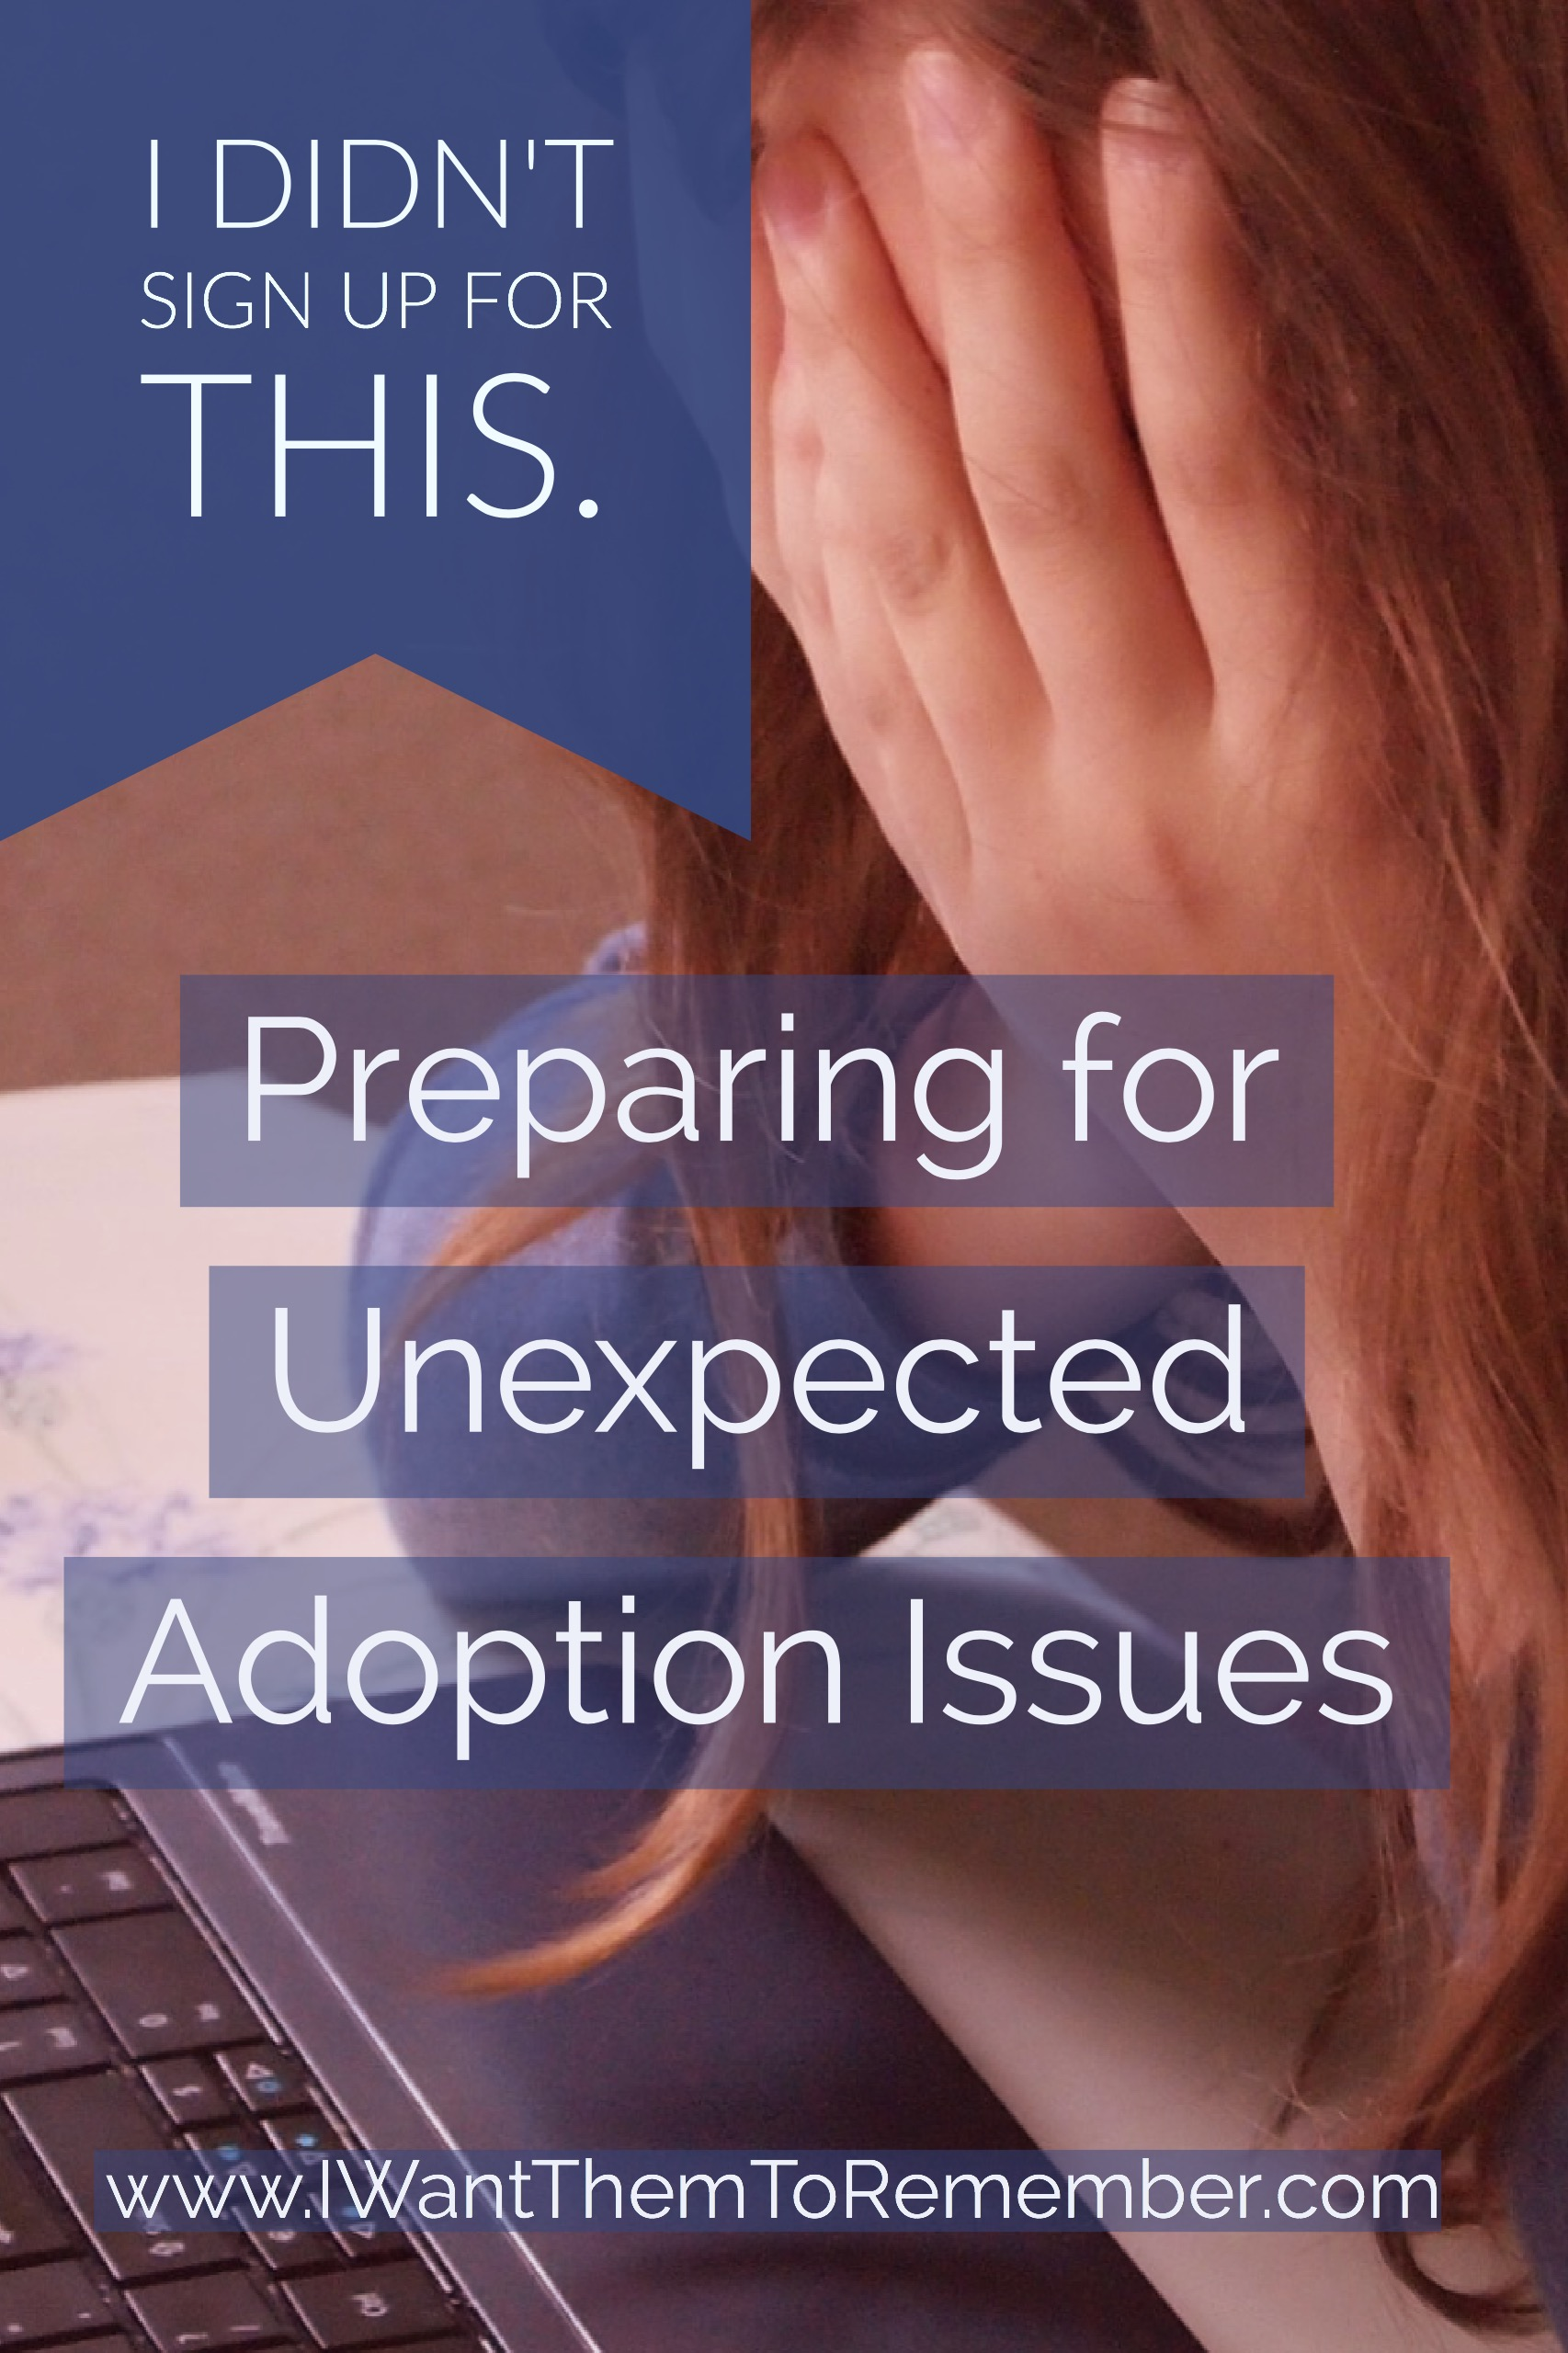 Are you considering adoption? Unexpected adoption issues are inevitable, but don't let the unknowns hold you back. Prepare as much as you can, but remember only God knows the future of any child, and He will love that child through you.